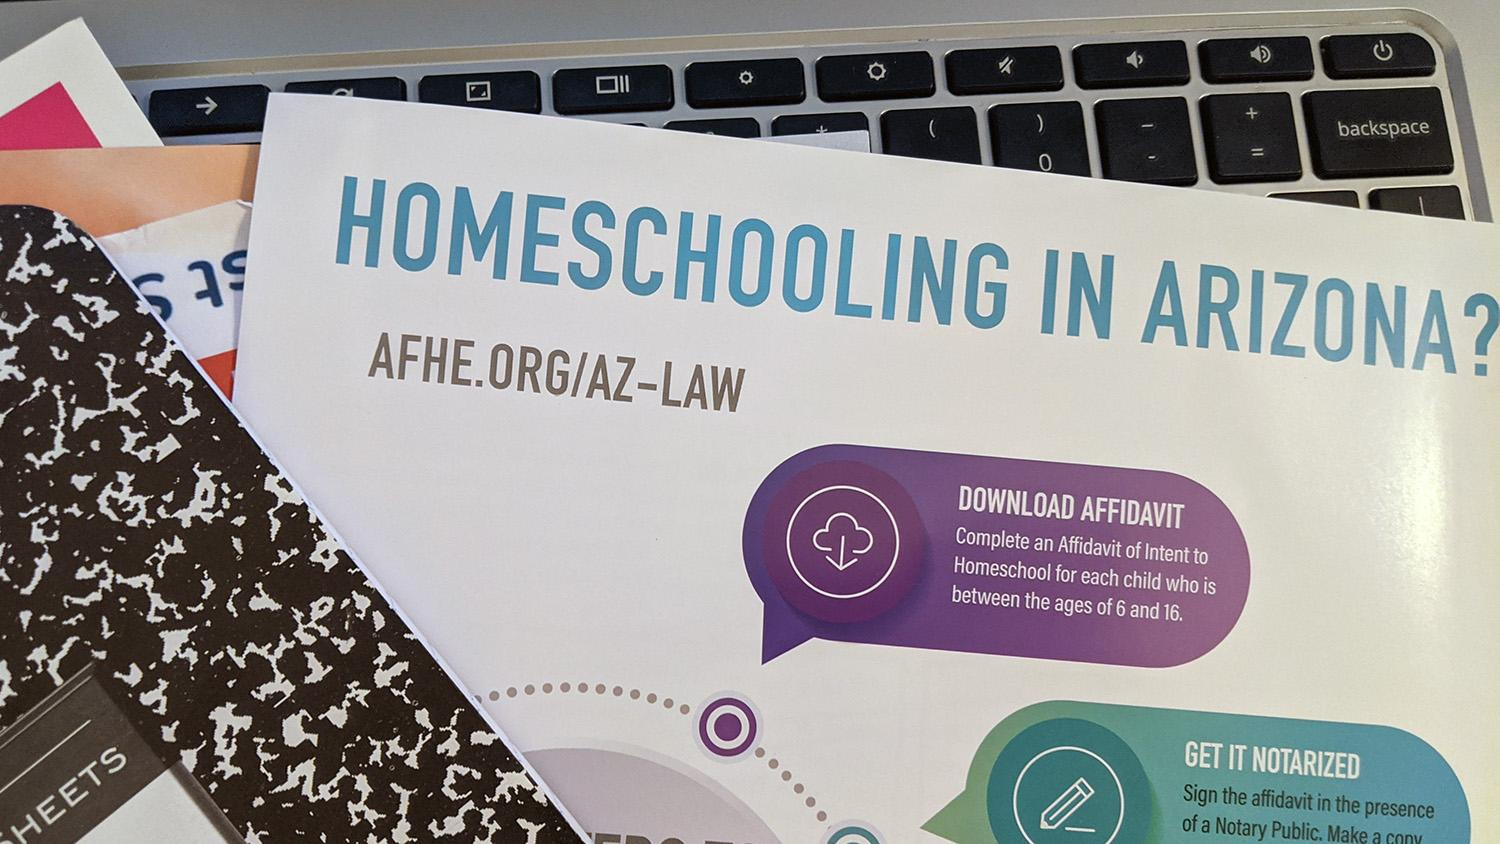 A flyer with information about homeschooling